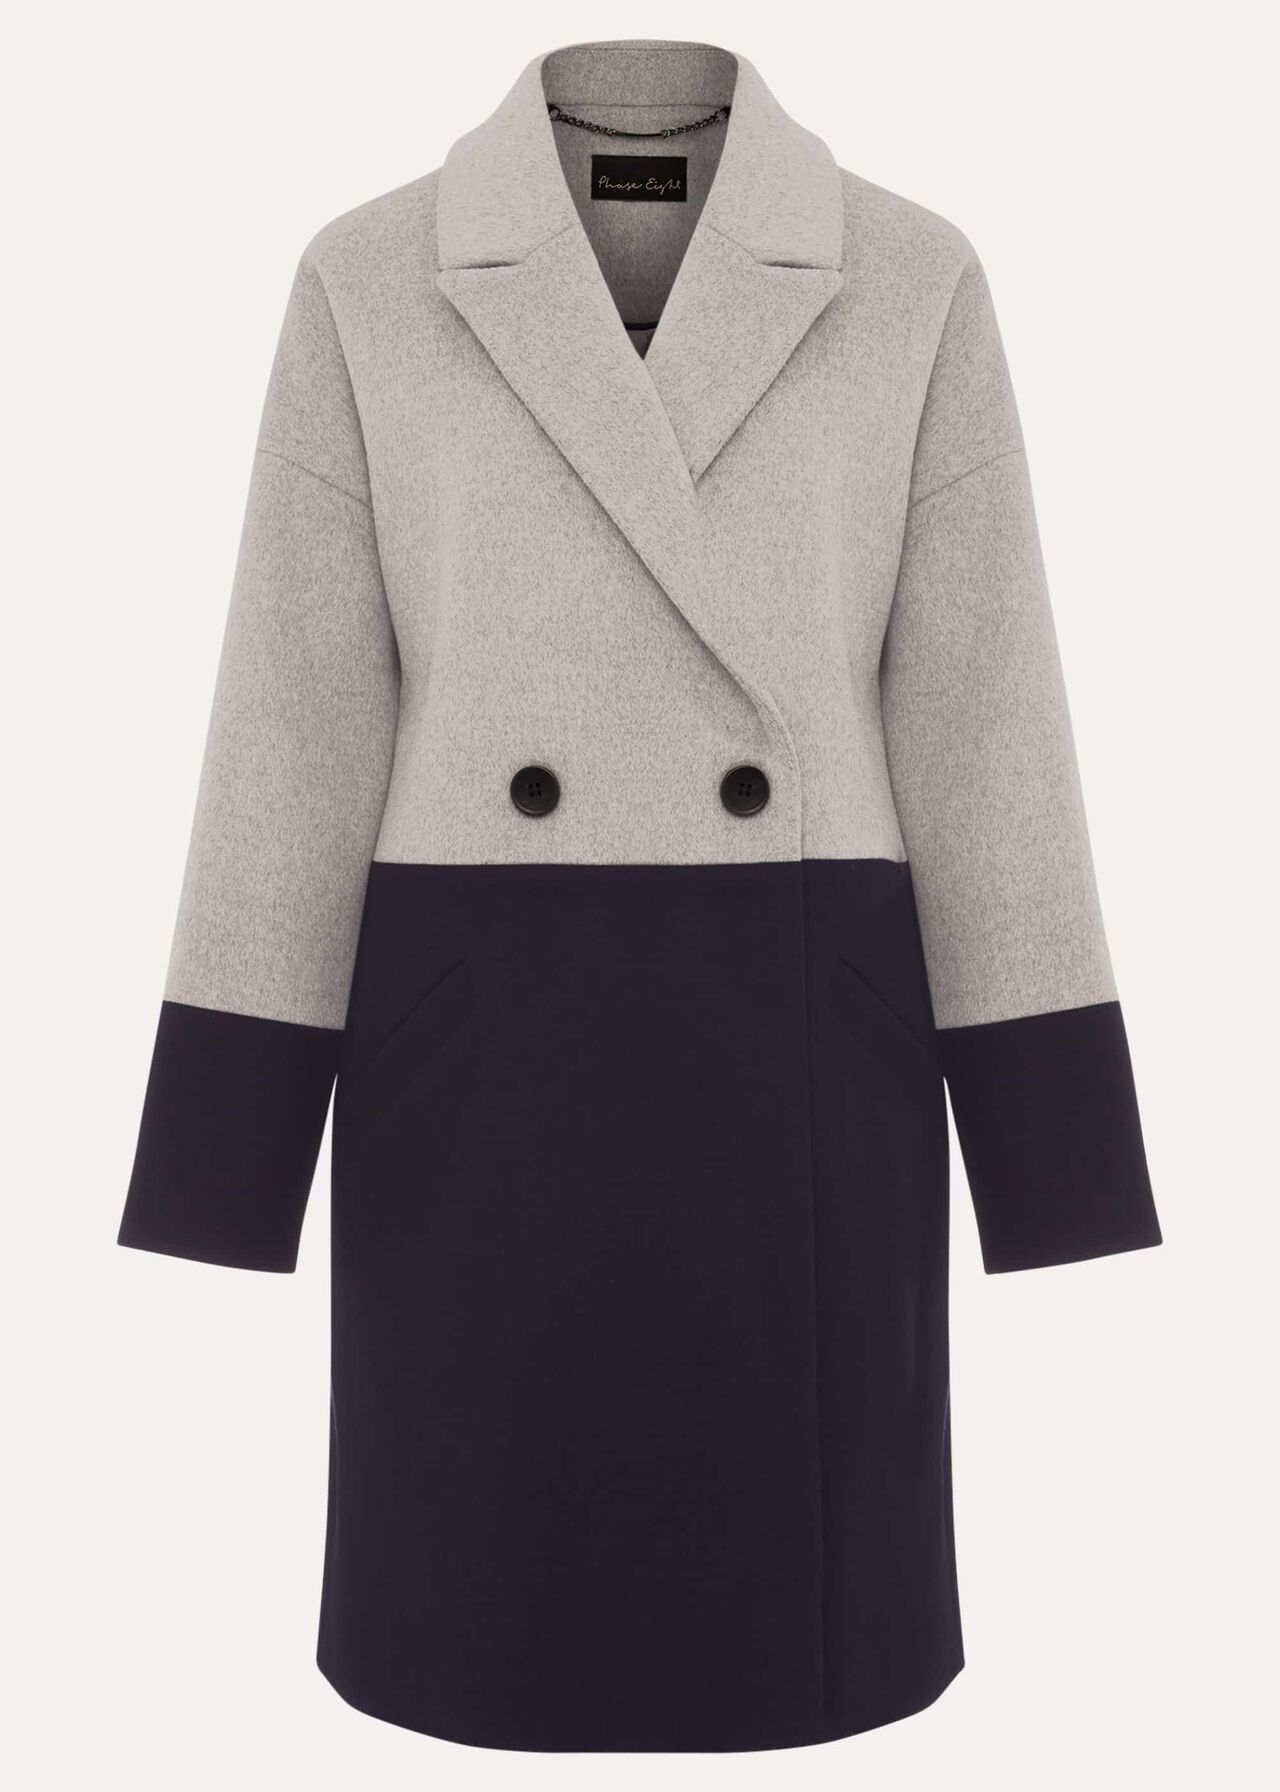 Emery Colourblock Wool Coat